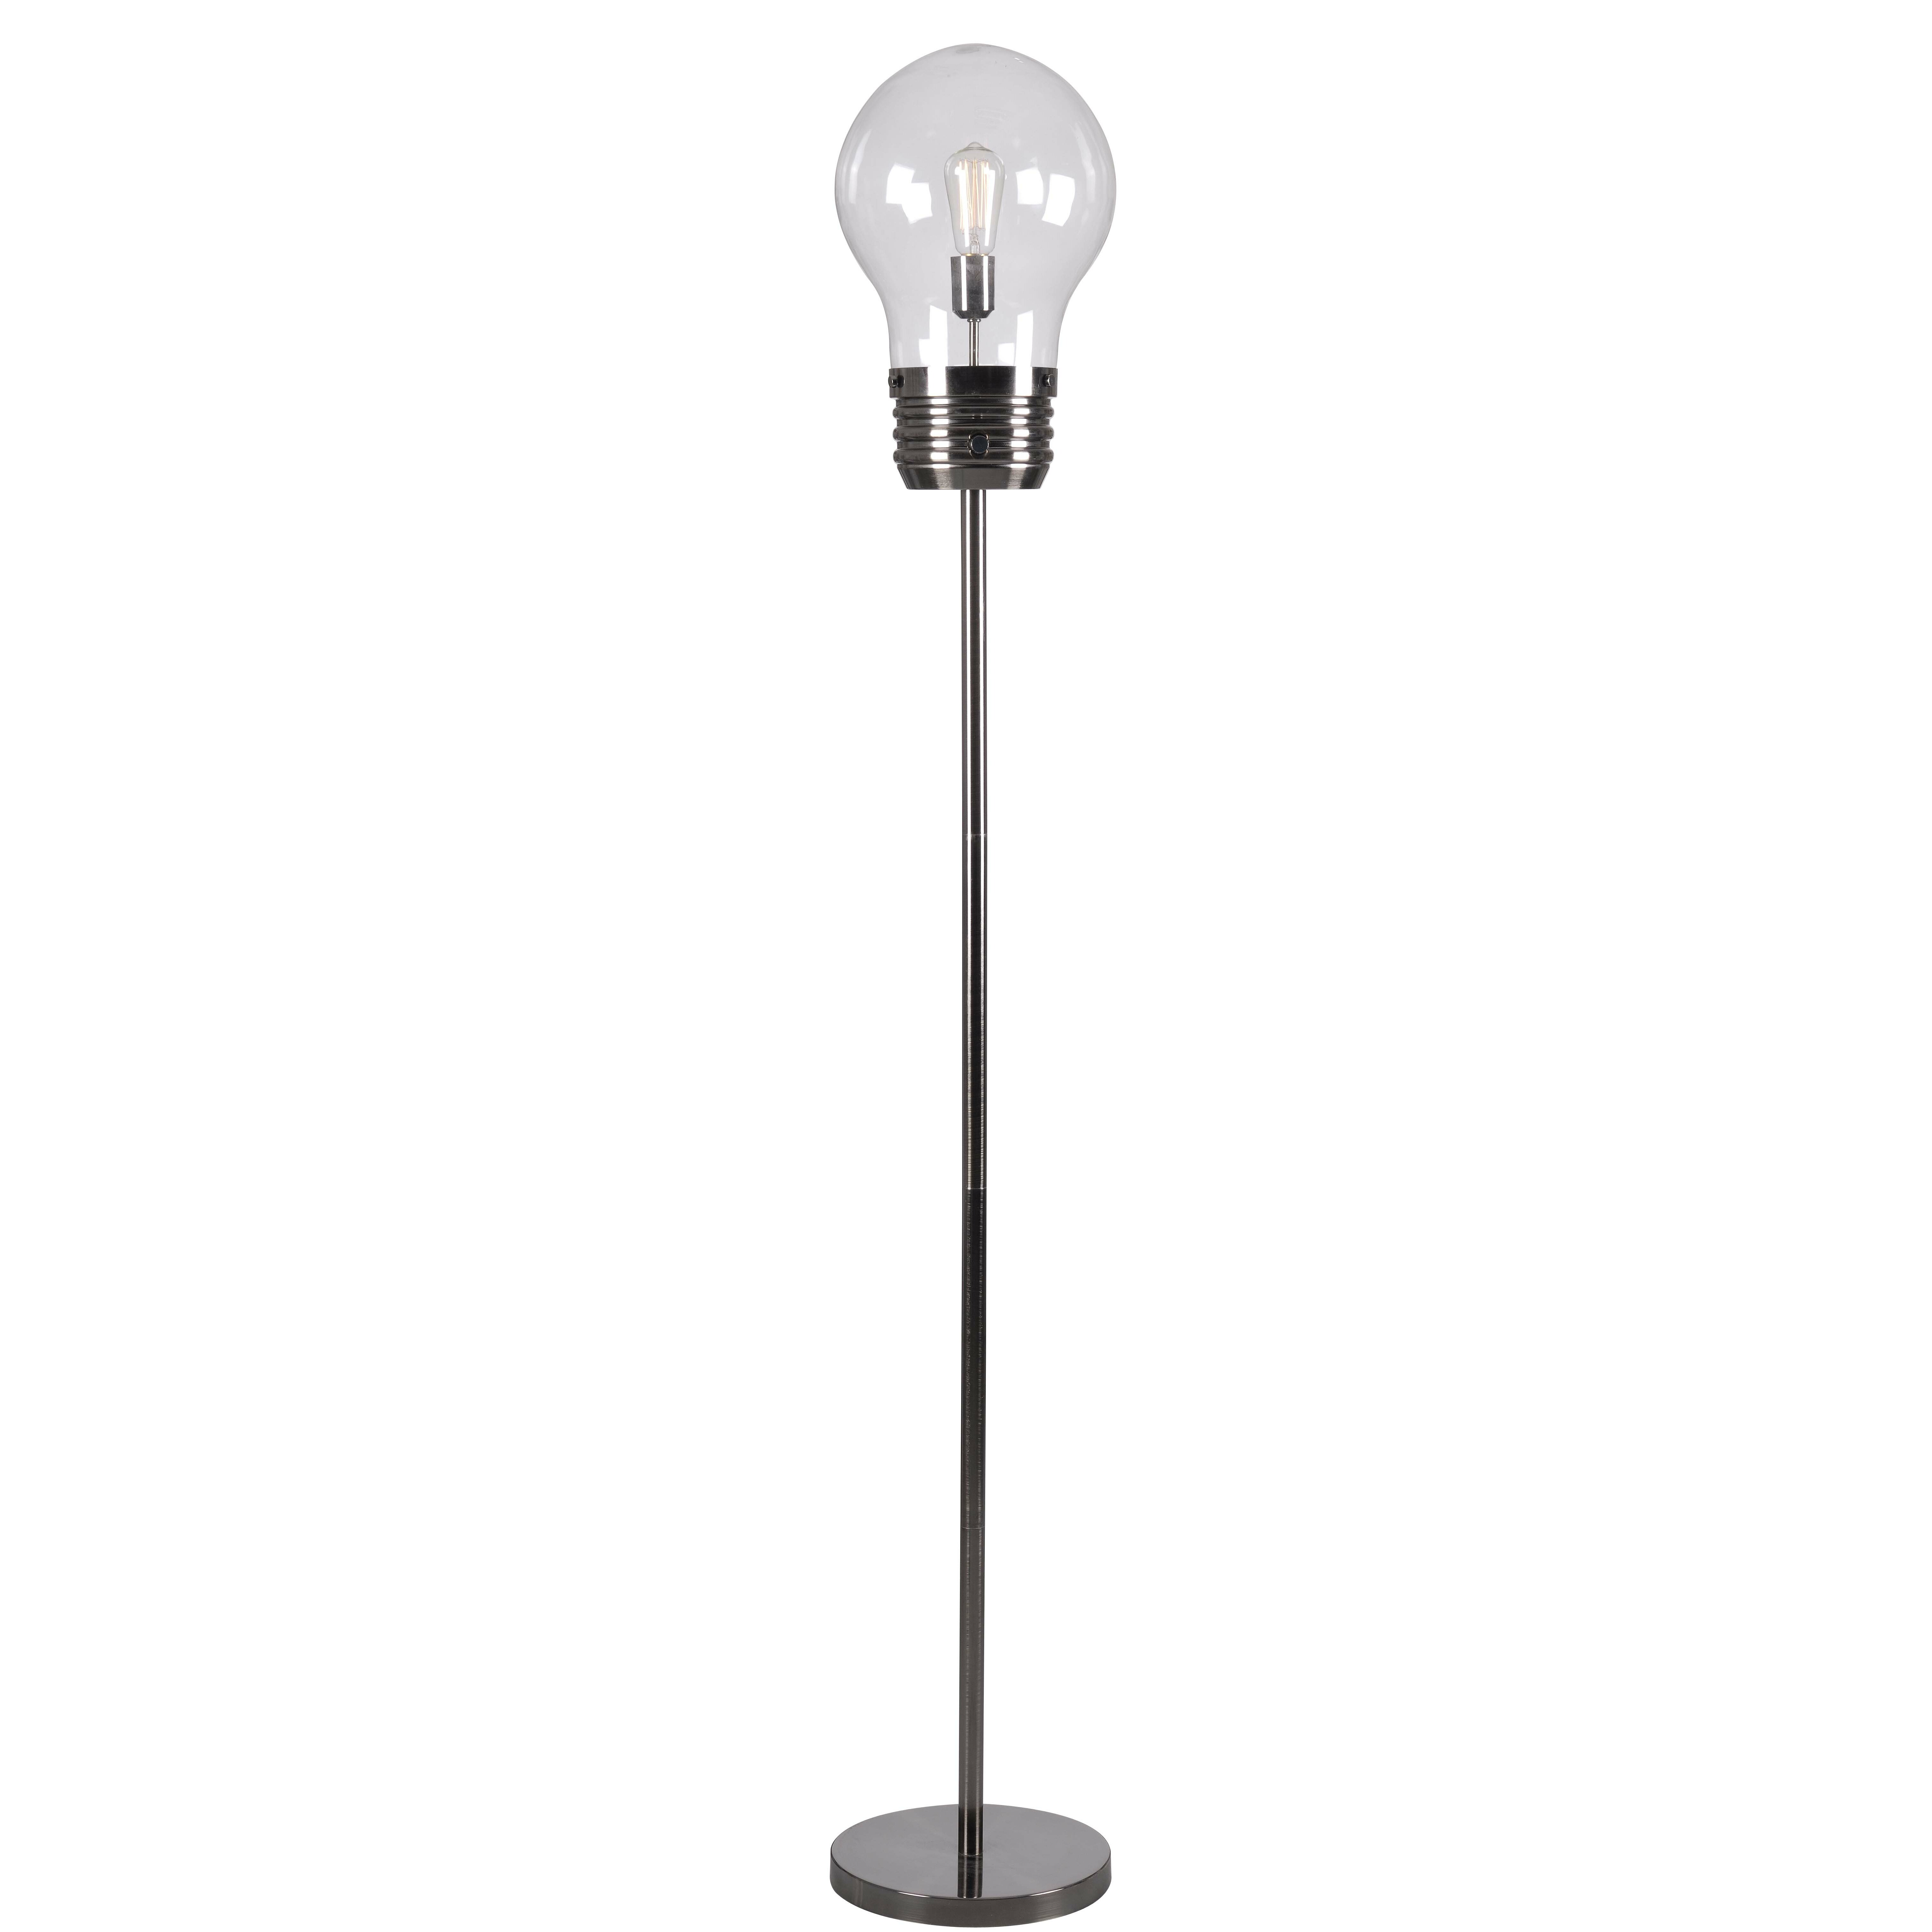 Eldshult table lamp ikea fabric shade gives a diffused and decorative - Nyfors Floor Lamp Ikea You Can Create A Soft Cozy Atmosphere In Your Home With